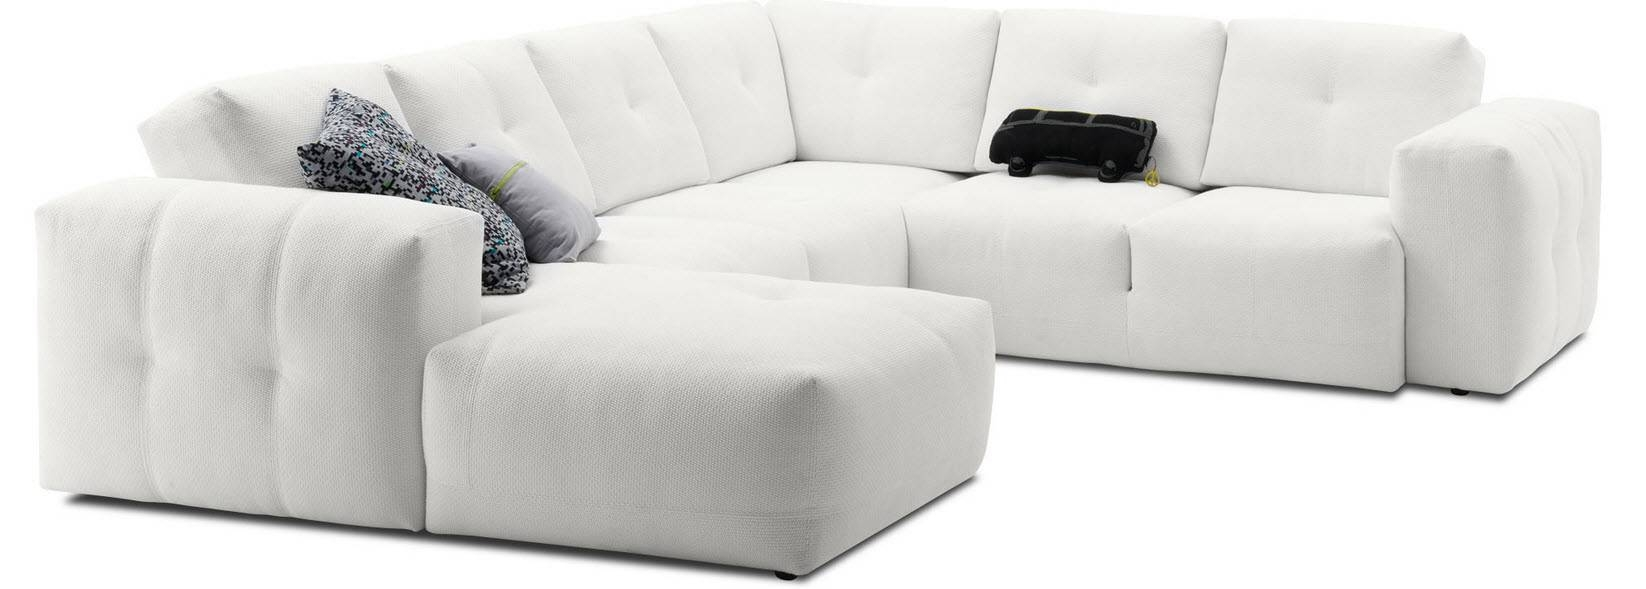 Game On With Our Majorly Modular Sofas | Boconcept Northwest with regard to Cloud Sectional Sofas (Image 7 of 15)